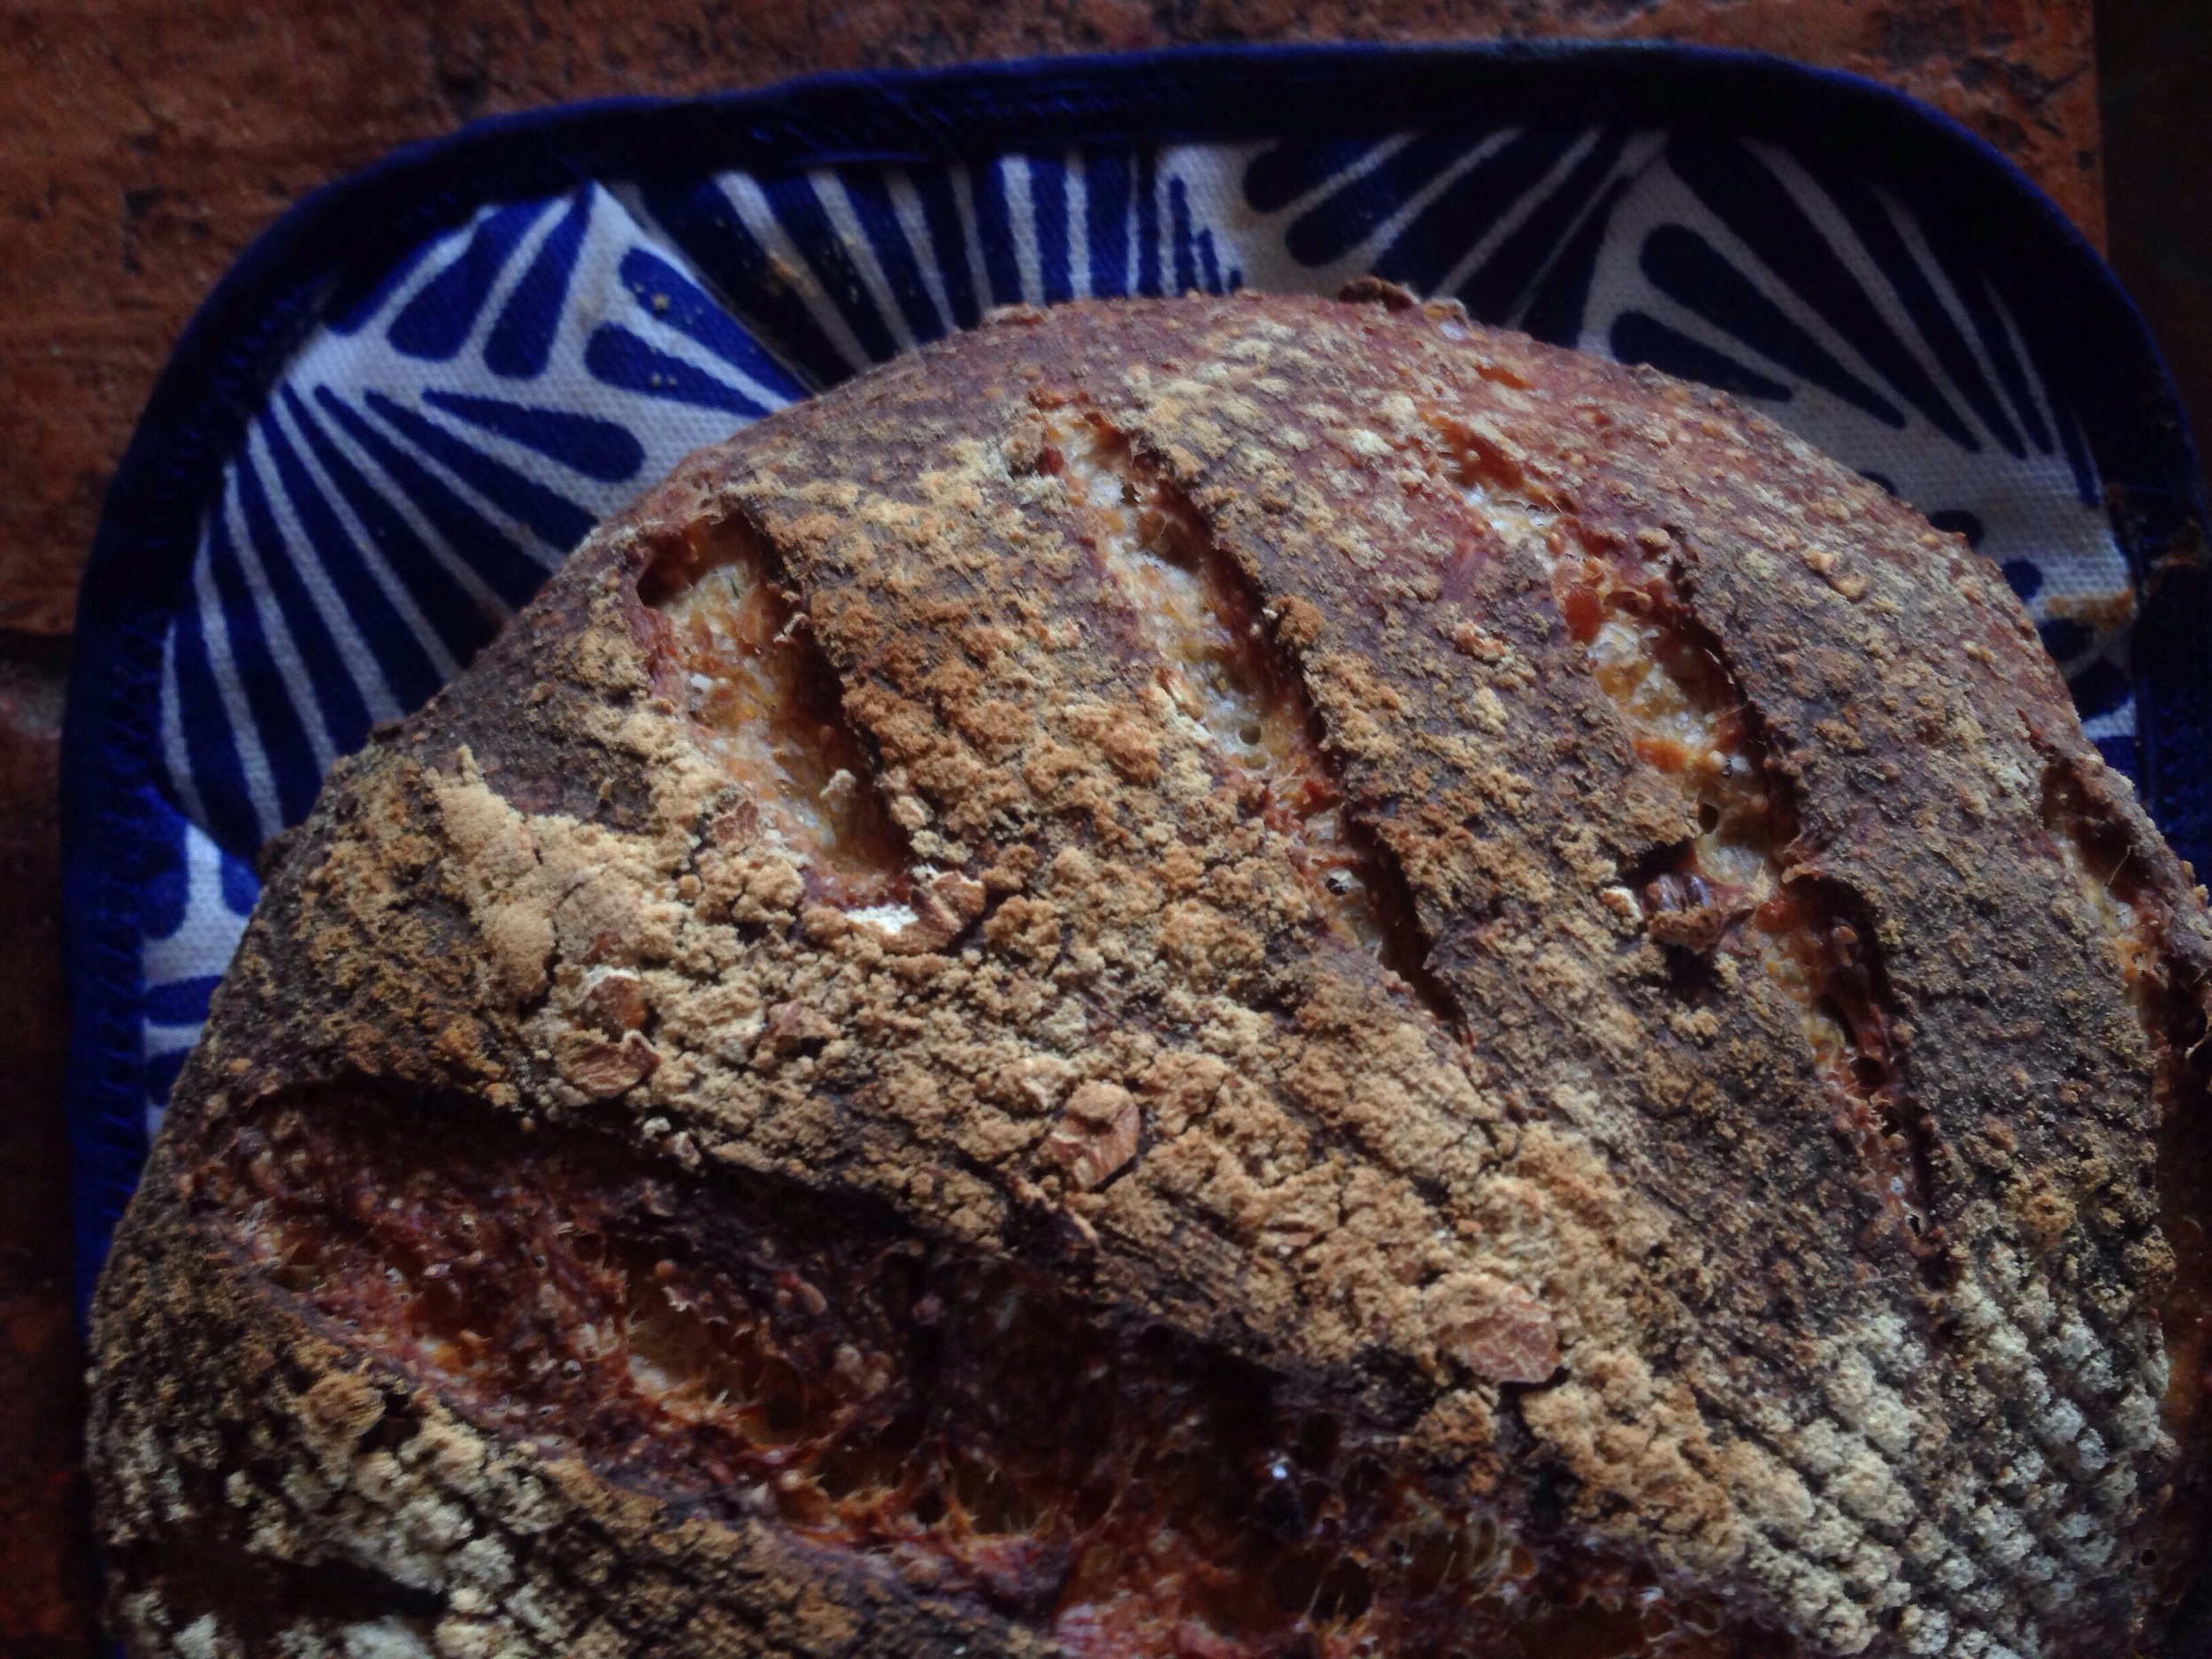 A crunchy loaf full of sprouted quinoa, chia, and amaranth as well as soaked oats and barley and pre-gelatinized corn.  Baked in a ceramic vessel in Cuenca, Ecuador.